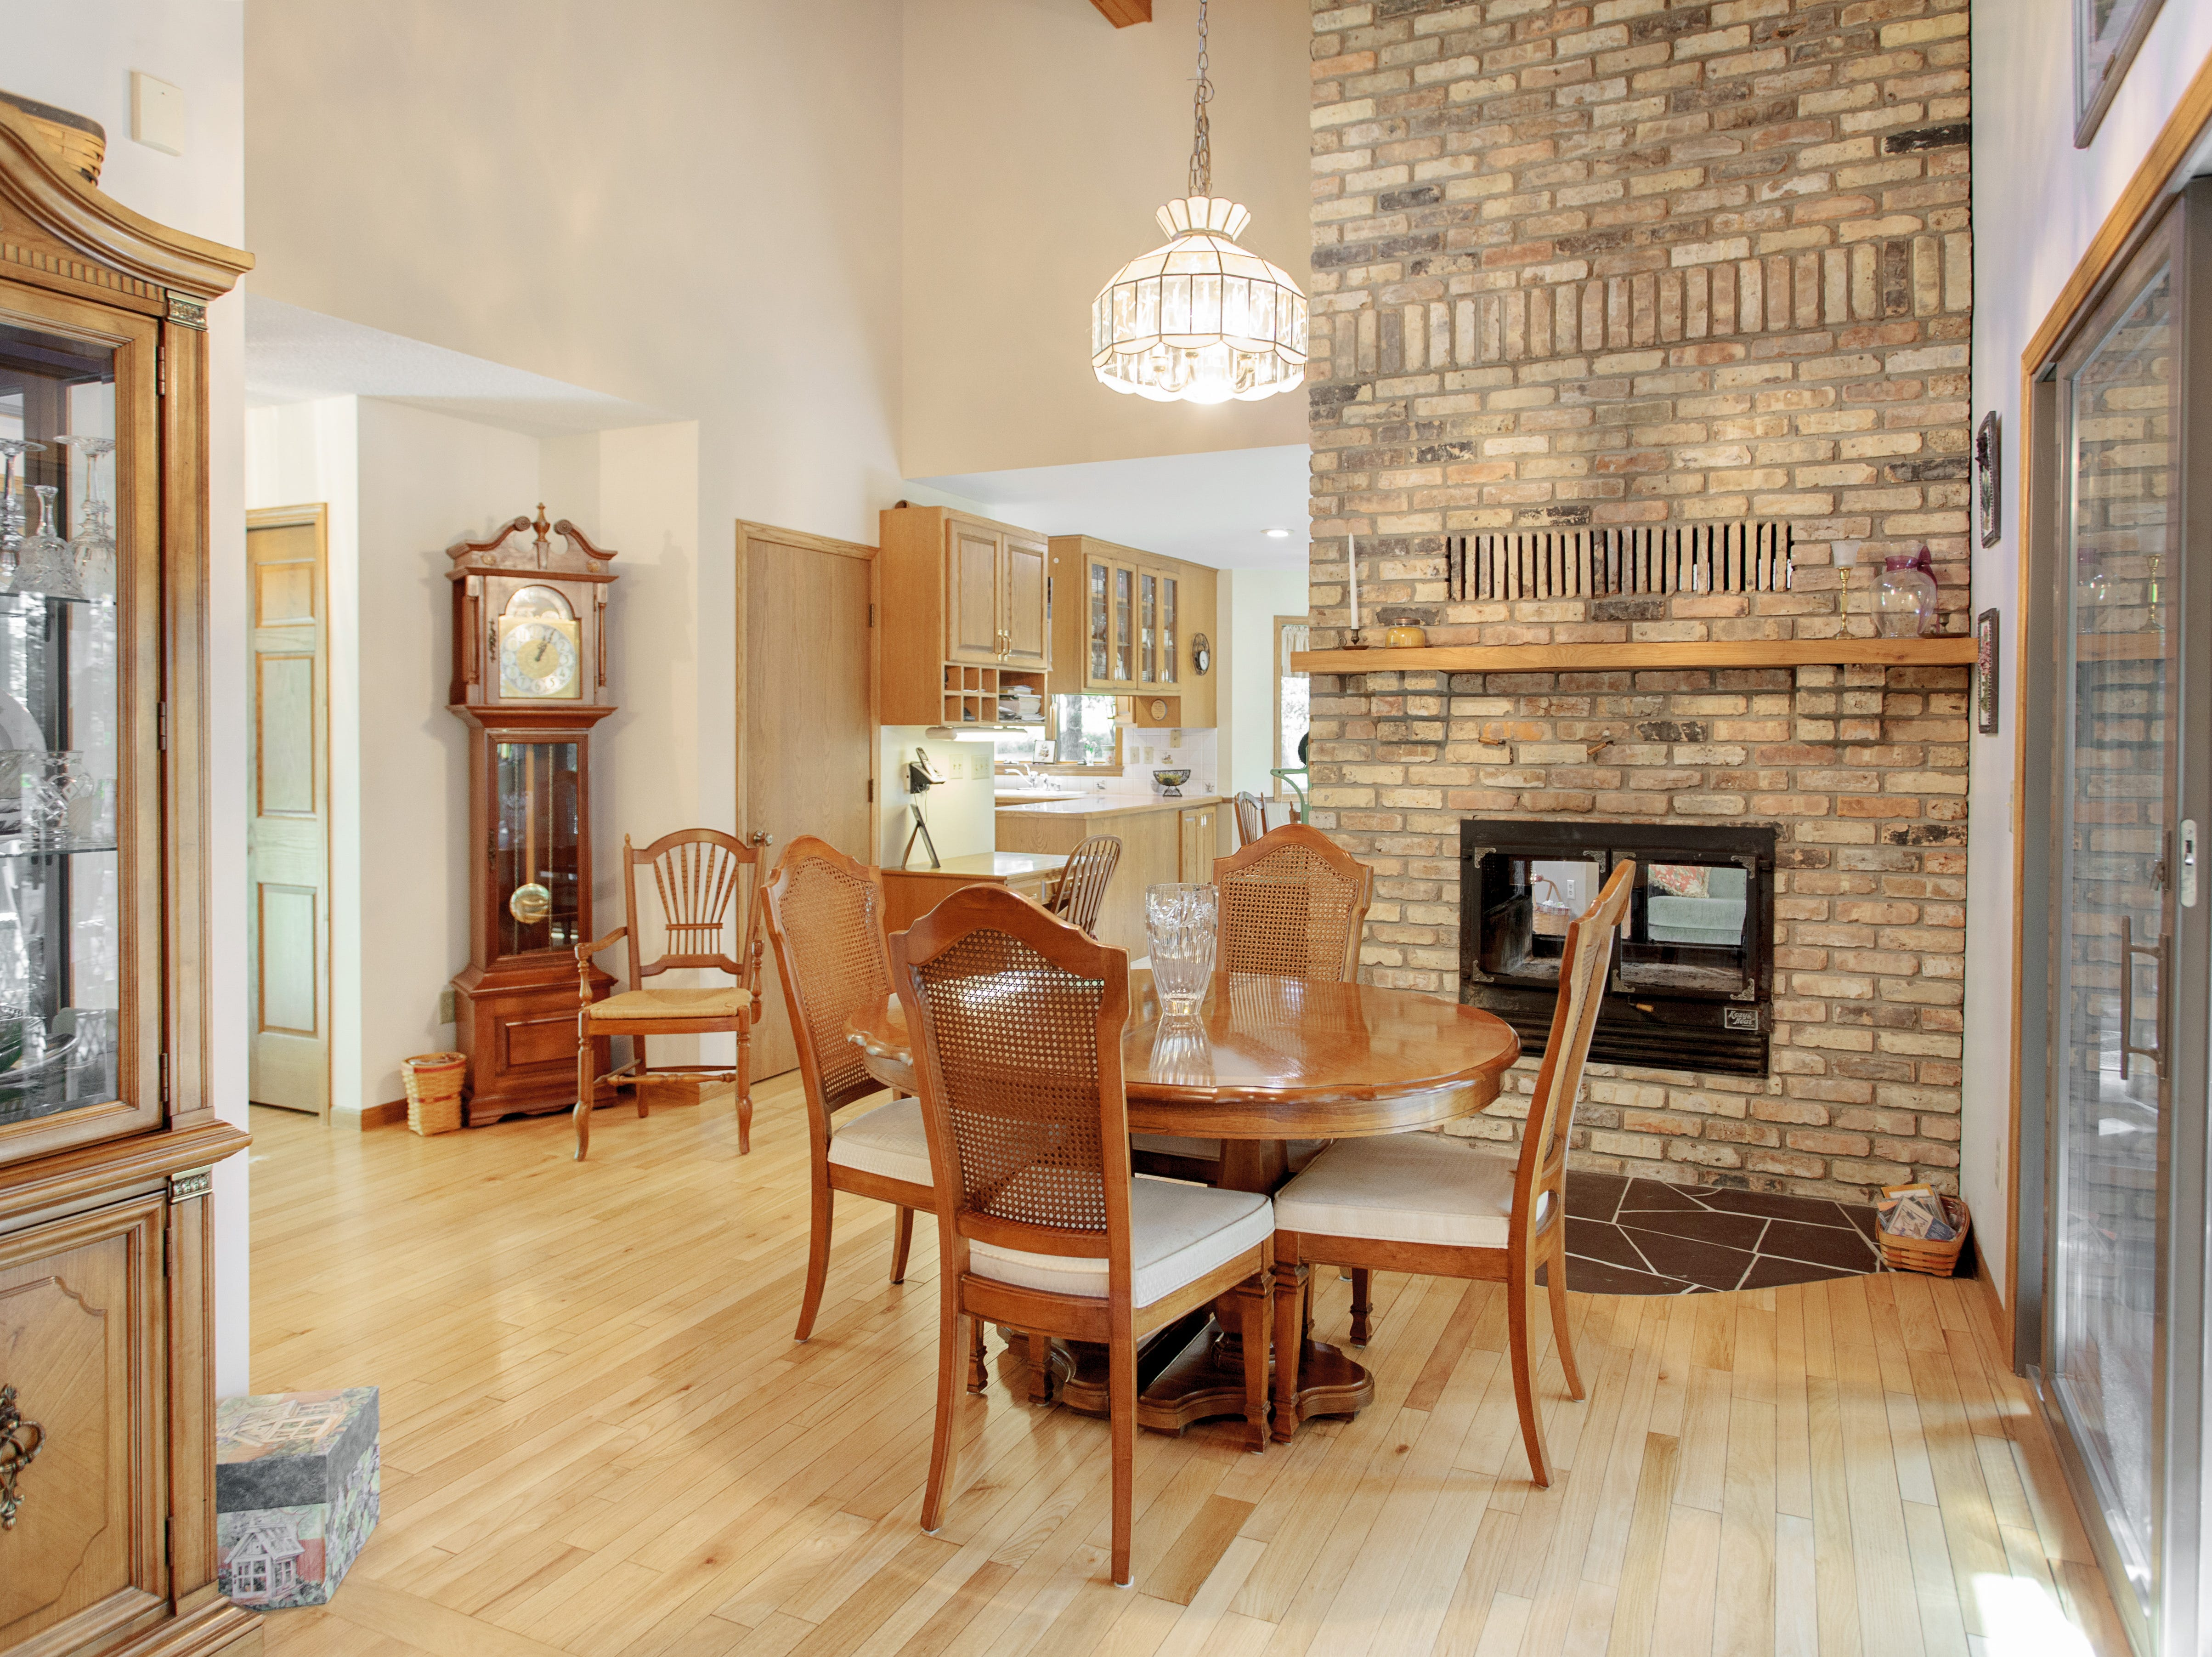 The hearth room provides its own access to the outdoors and sits adjacent to the kitchen.